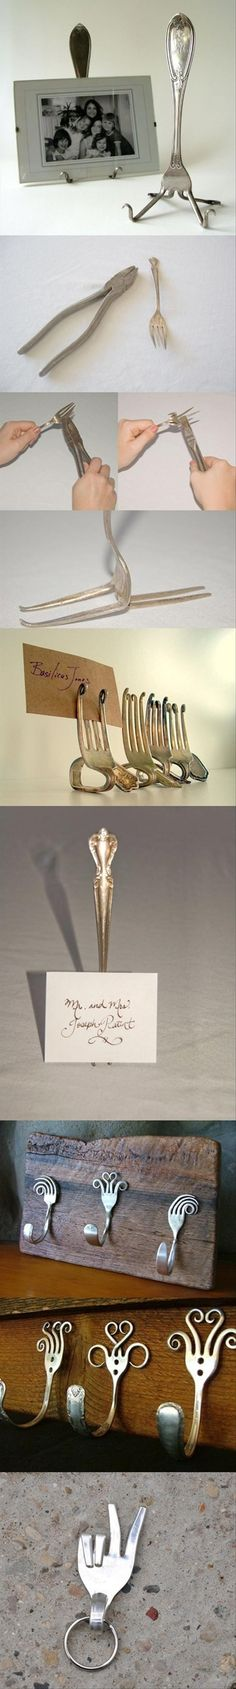 Really like these picture holders made out of forks!